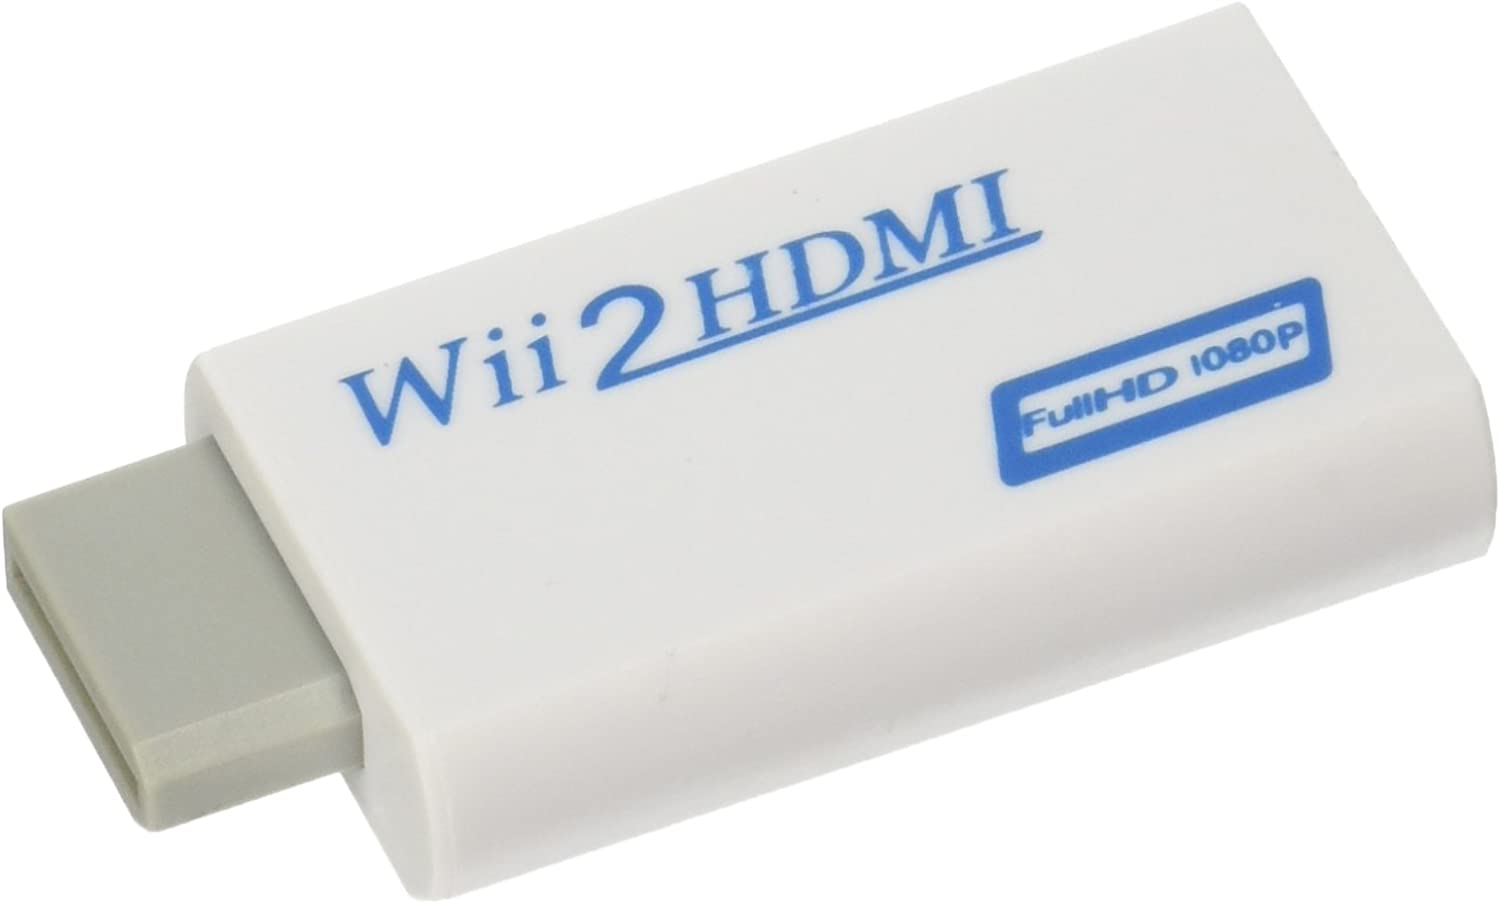 Eastvita Full 1080p 720P HD Nintendo Wii to HDMI Converter Output Upscaling Adapter 480i